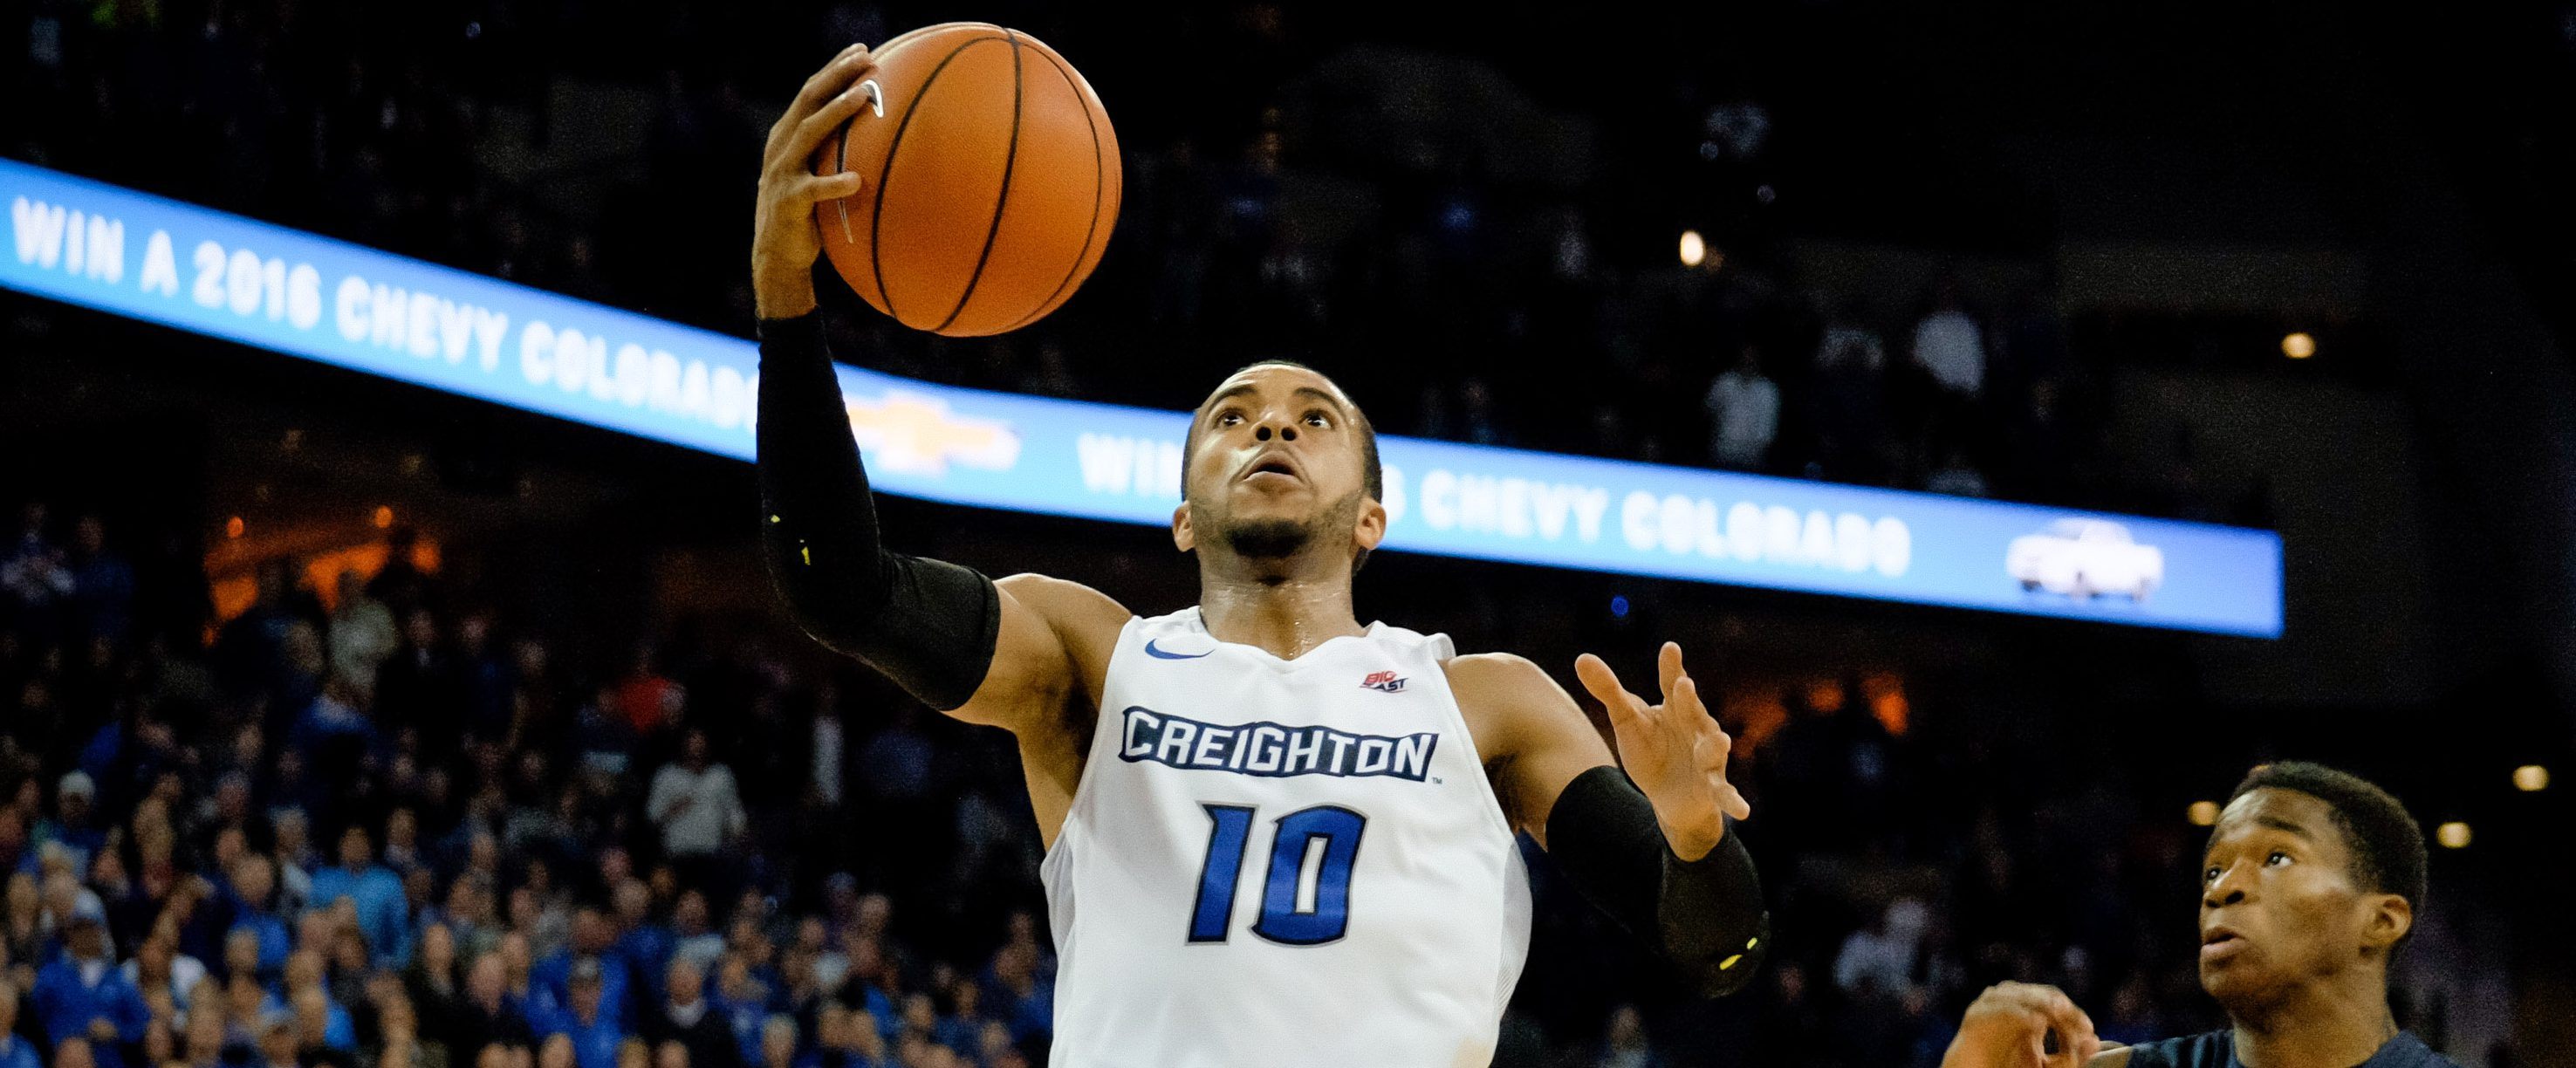 OMAHA, NE - FEBRUARY 9: Maurice Watson Jr. #10 of the Creighton Bluejays drives to the basket past Edmond Sumner #4 of the Xavier Musketeers during their game at CenturyLink Center on February 9, 2016 in Omaha, Nebraska. Creighton defeated Xavier 70-56. (Photo by Eric Francis/Getty Images)